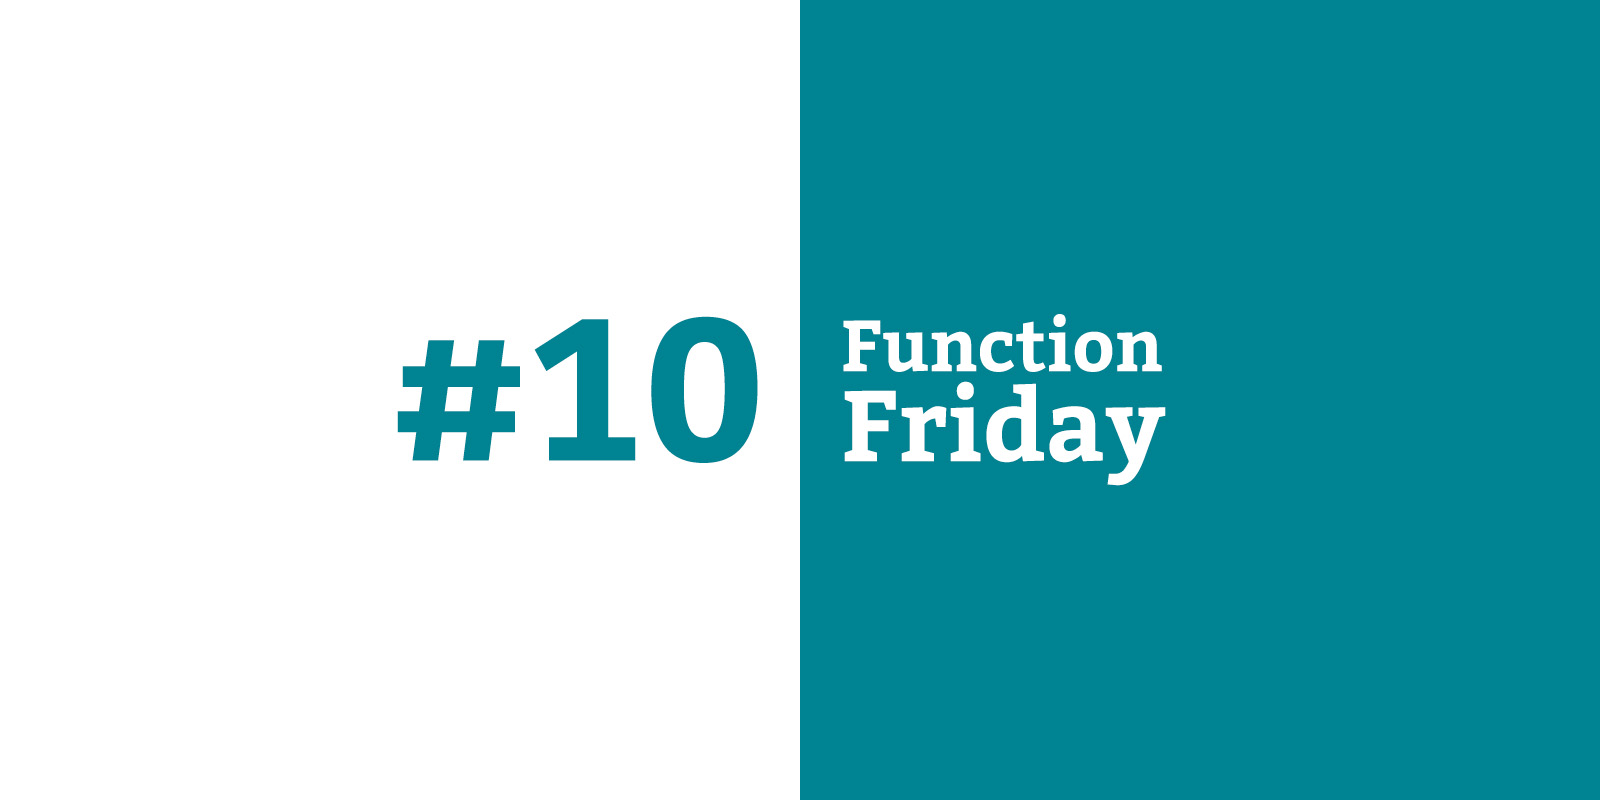 Function Friday #10